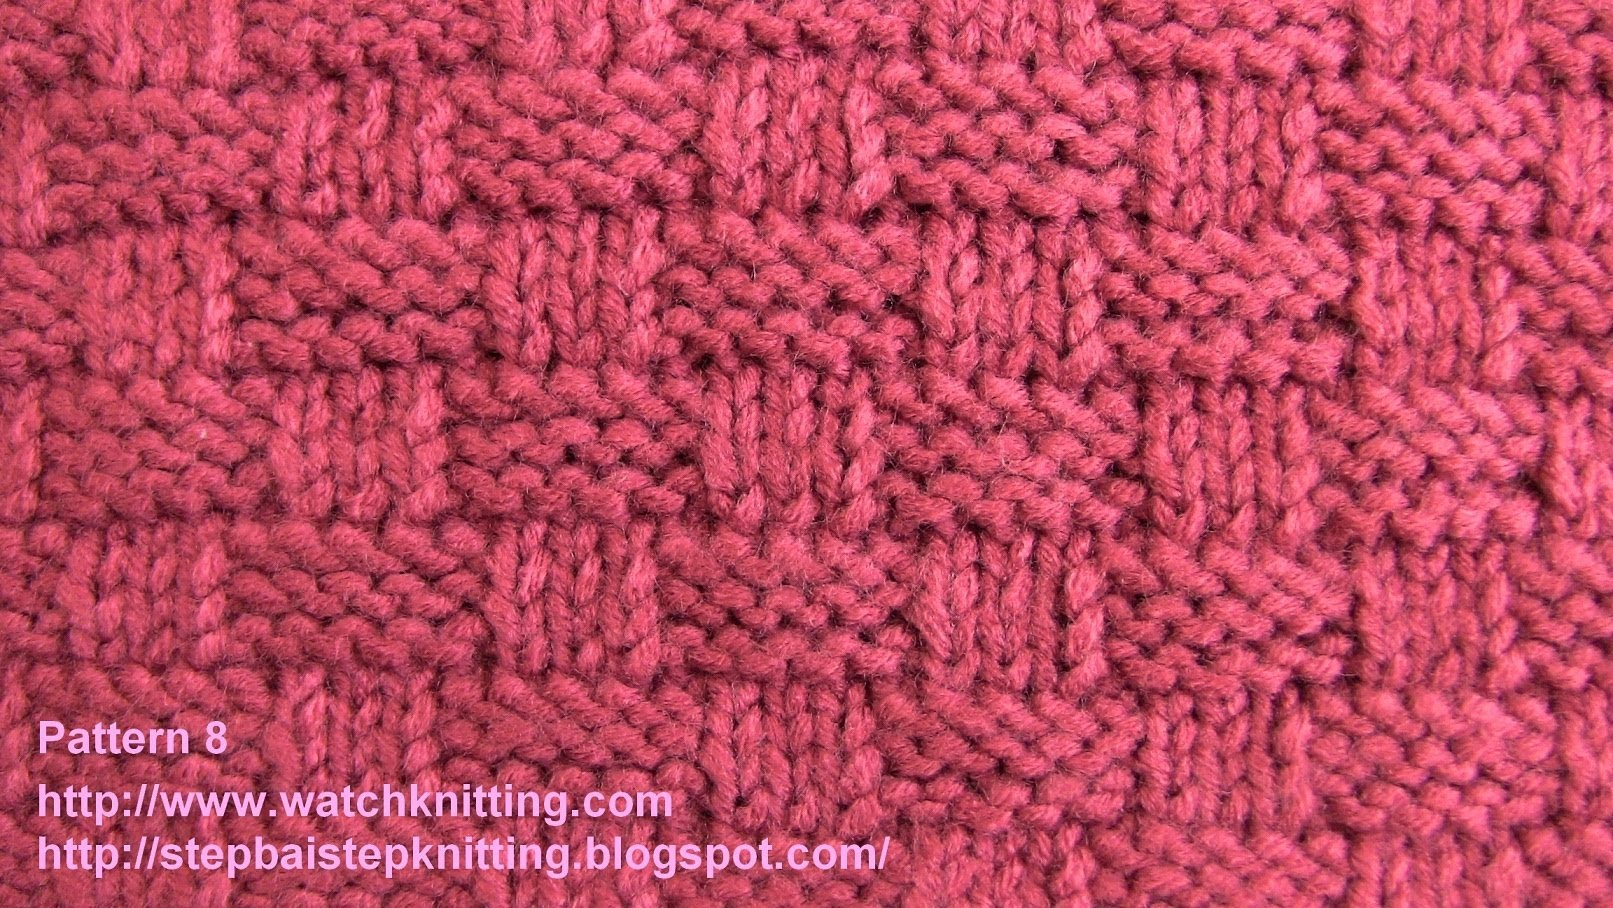 simple knitting patterns basket stitch-free knitting tutorials- watch knitting - pattern 8 - youtube tnhtknk